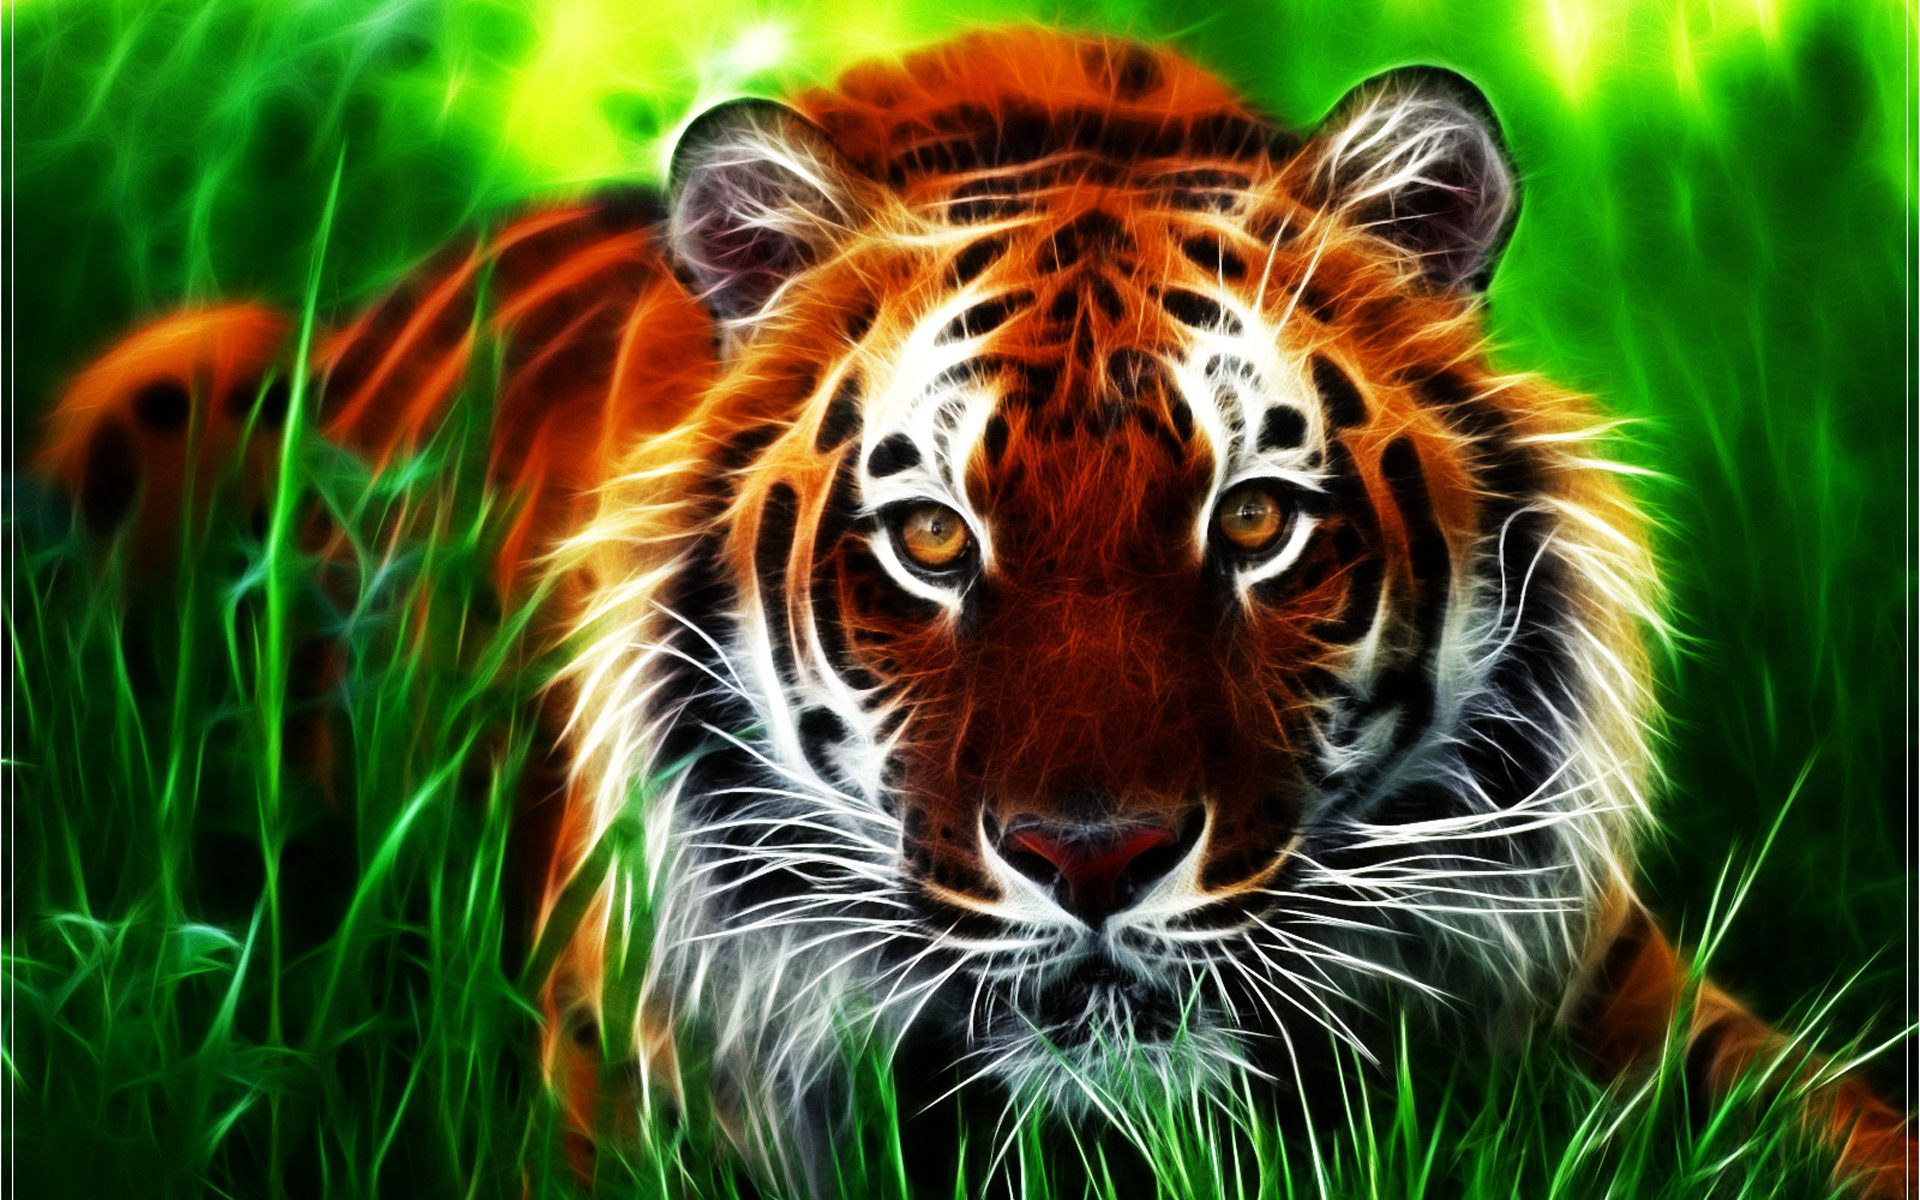 3D Tiger Face HD Wallpaper For Desktop Download High Quality